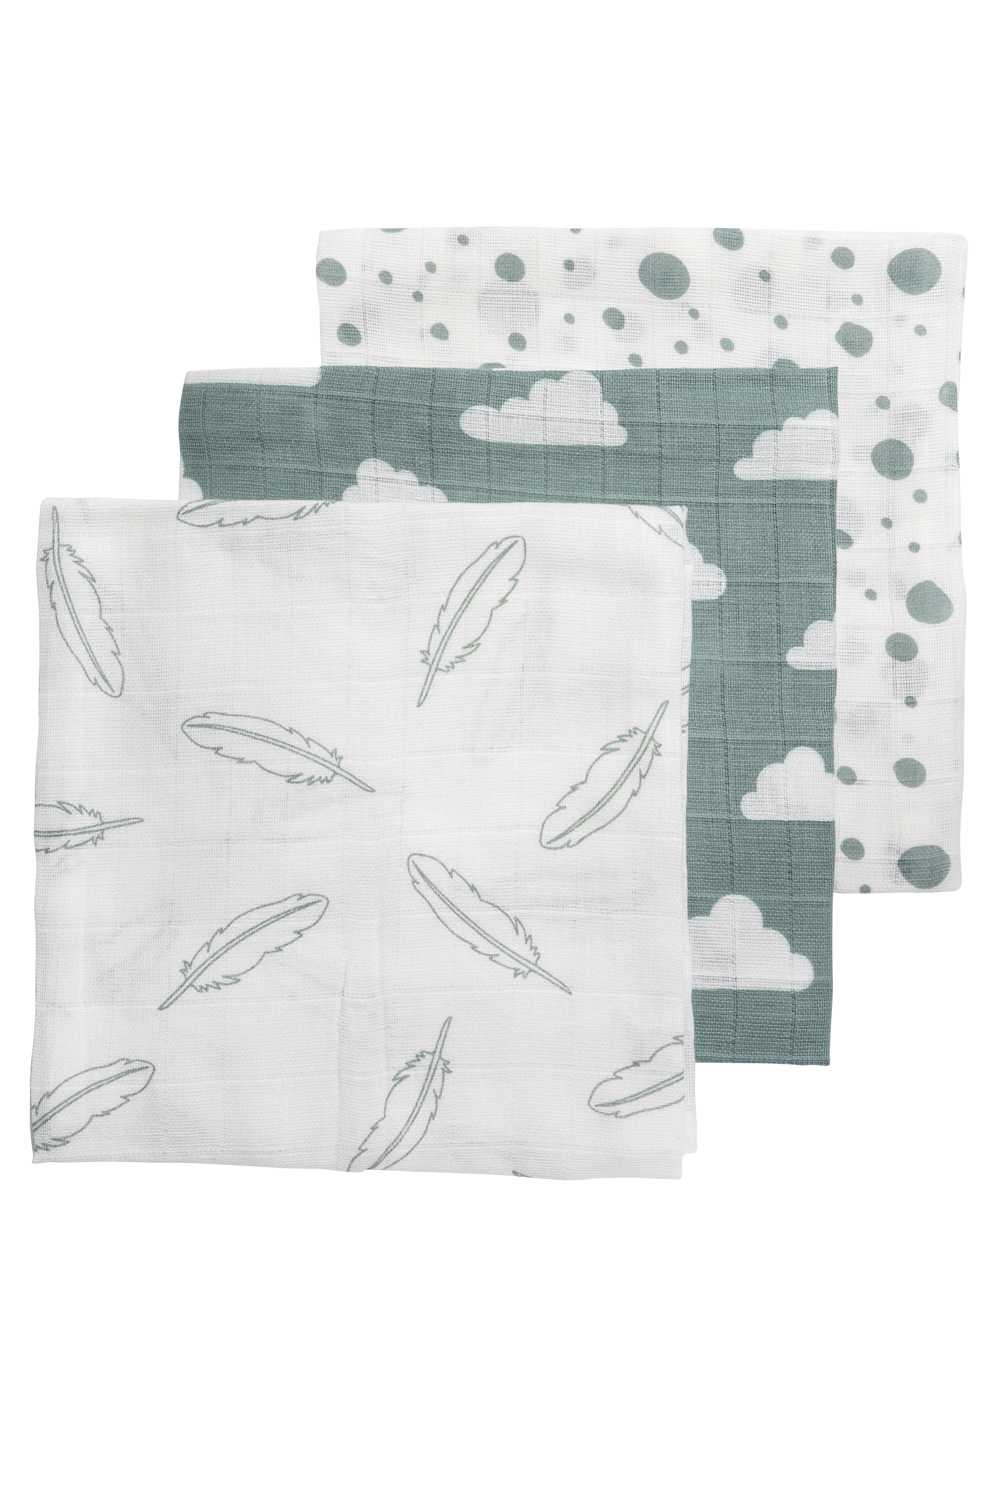 Musselin Mullwindeln 3-Pack Feathers-Clouds-Dots - Stone Green/Weiß - 70x70cm